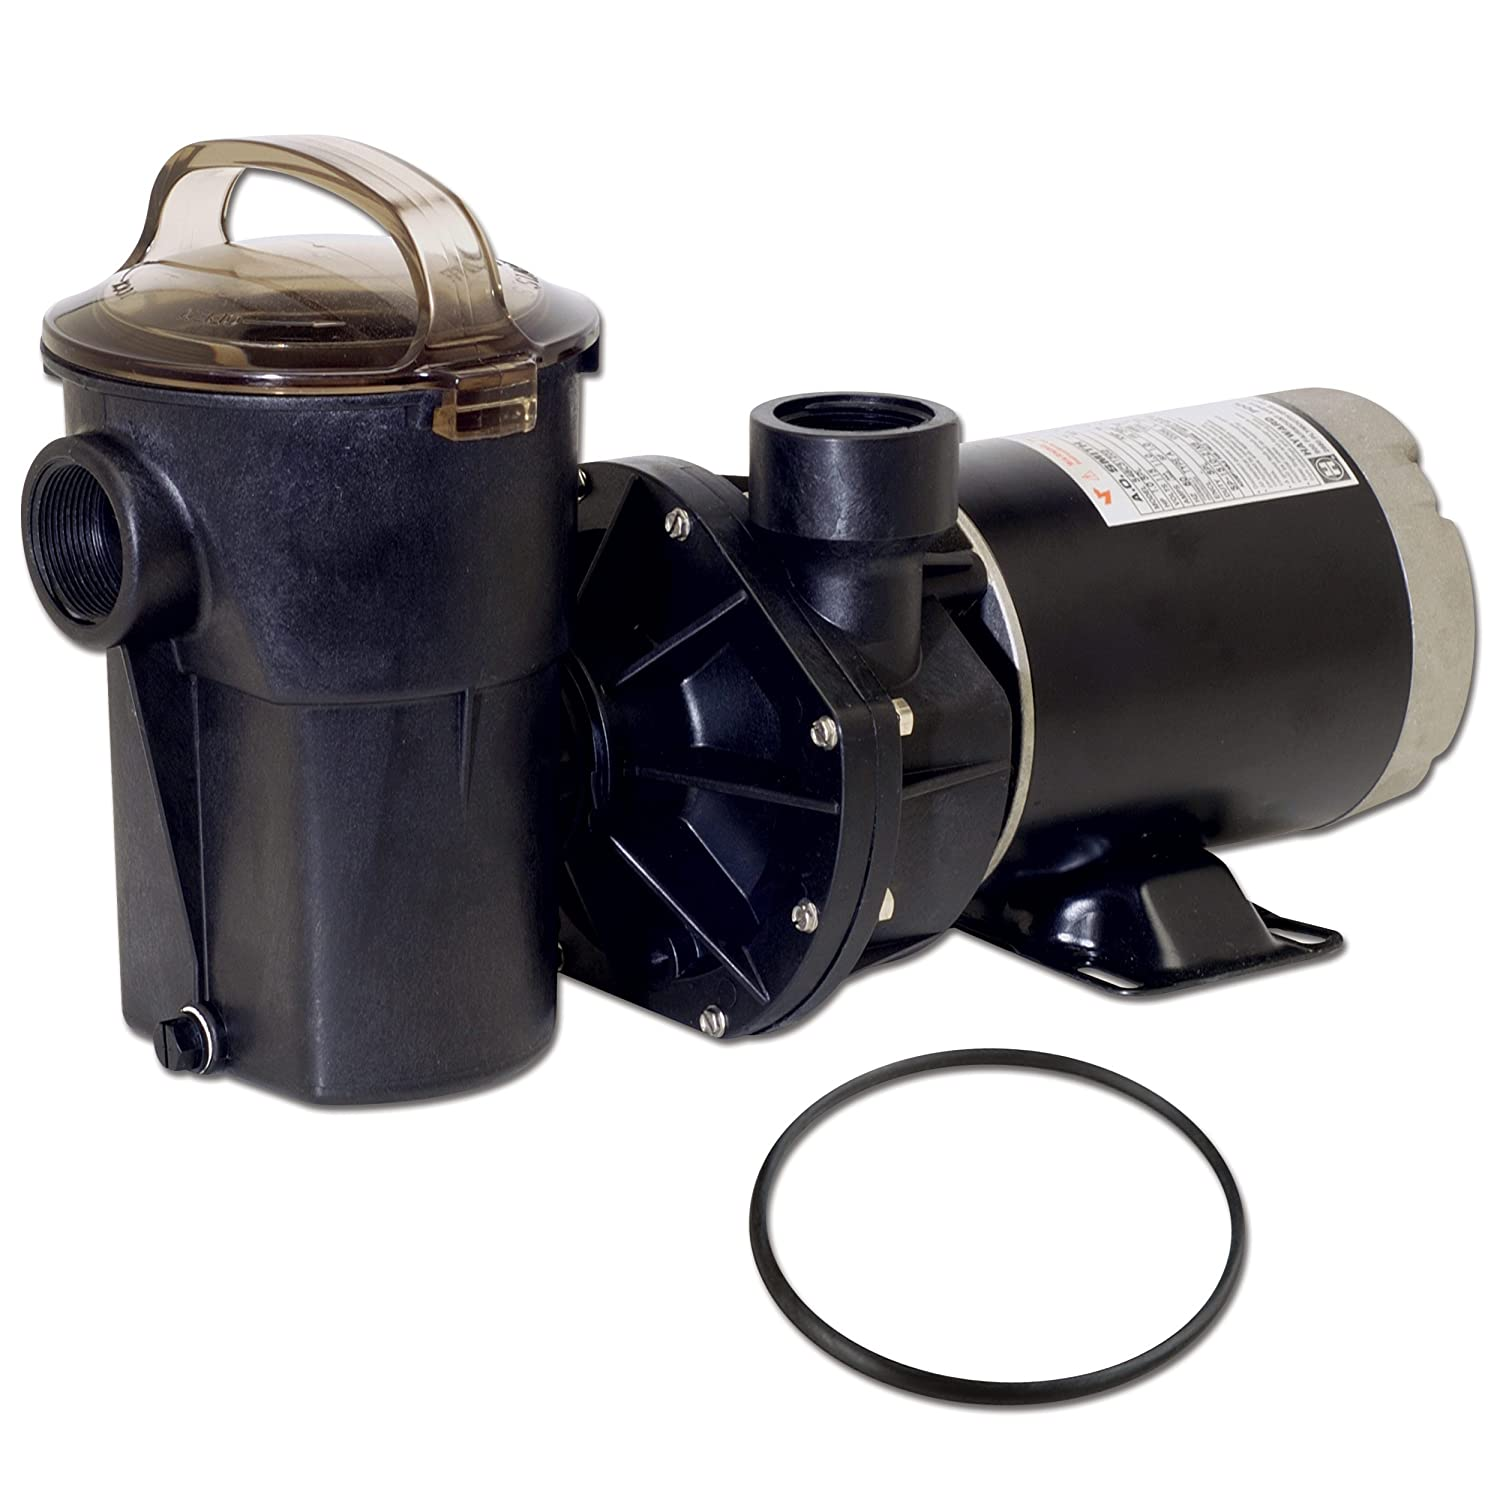 Top 10 Best Above Ground Pool Replacement Pumps 2018-2019 on ...